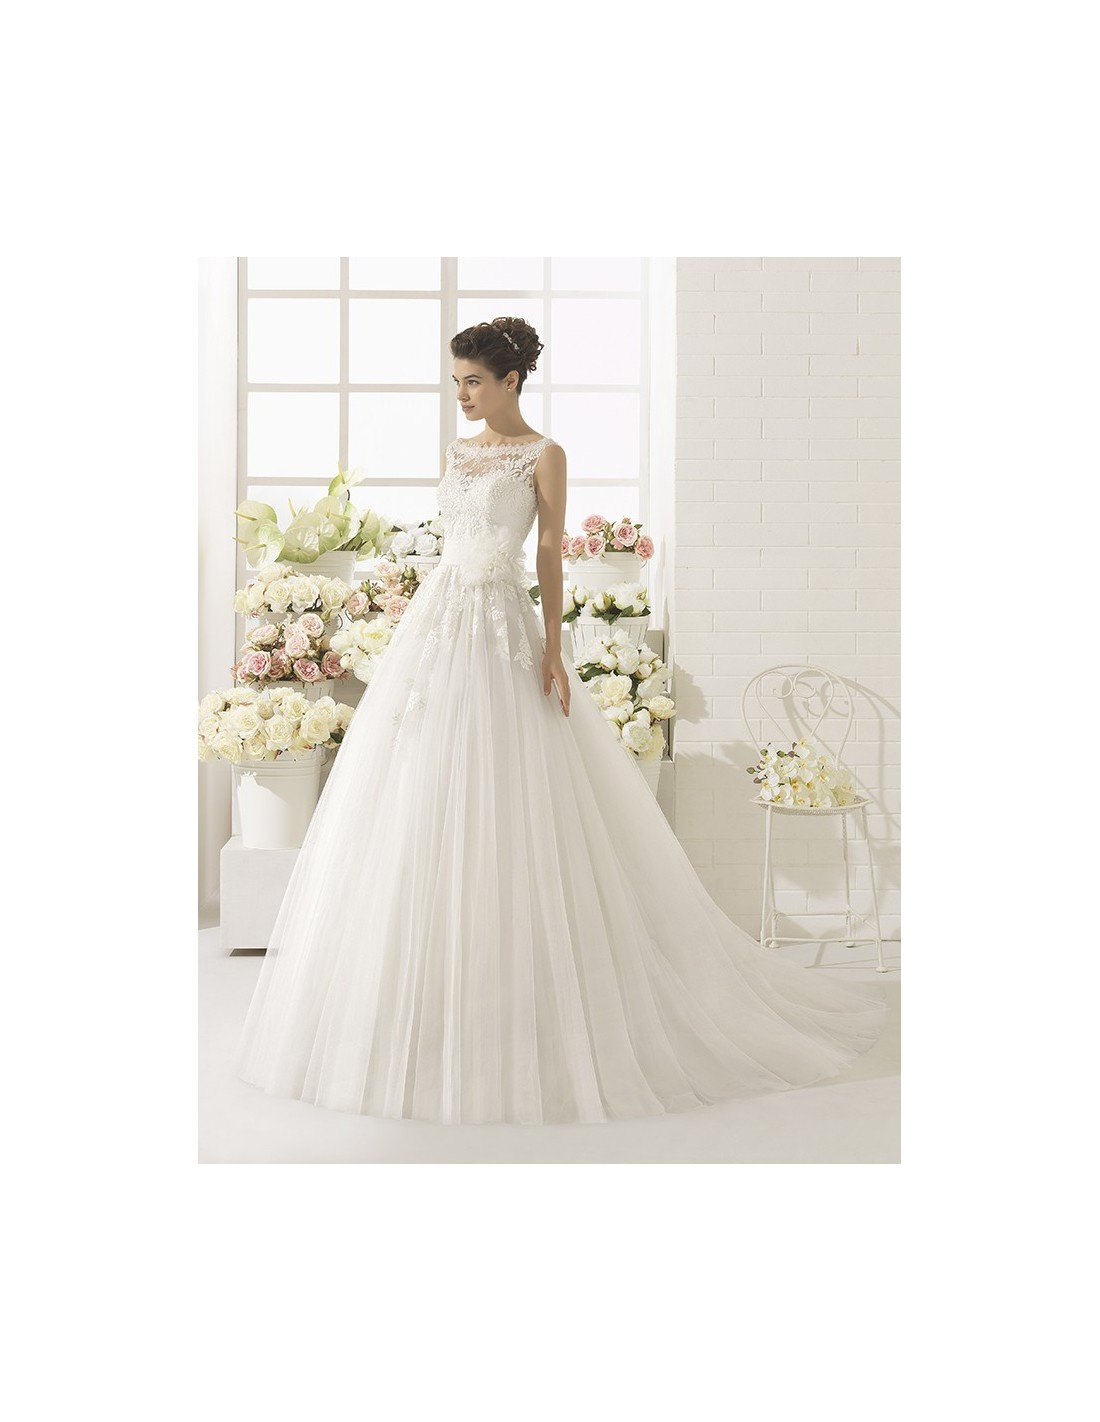 Lace And Satin Wedding Dresses 013 - Lace And Satin Wedding Dresses